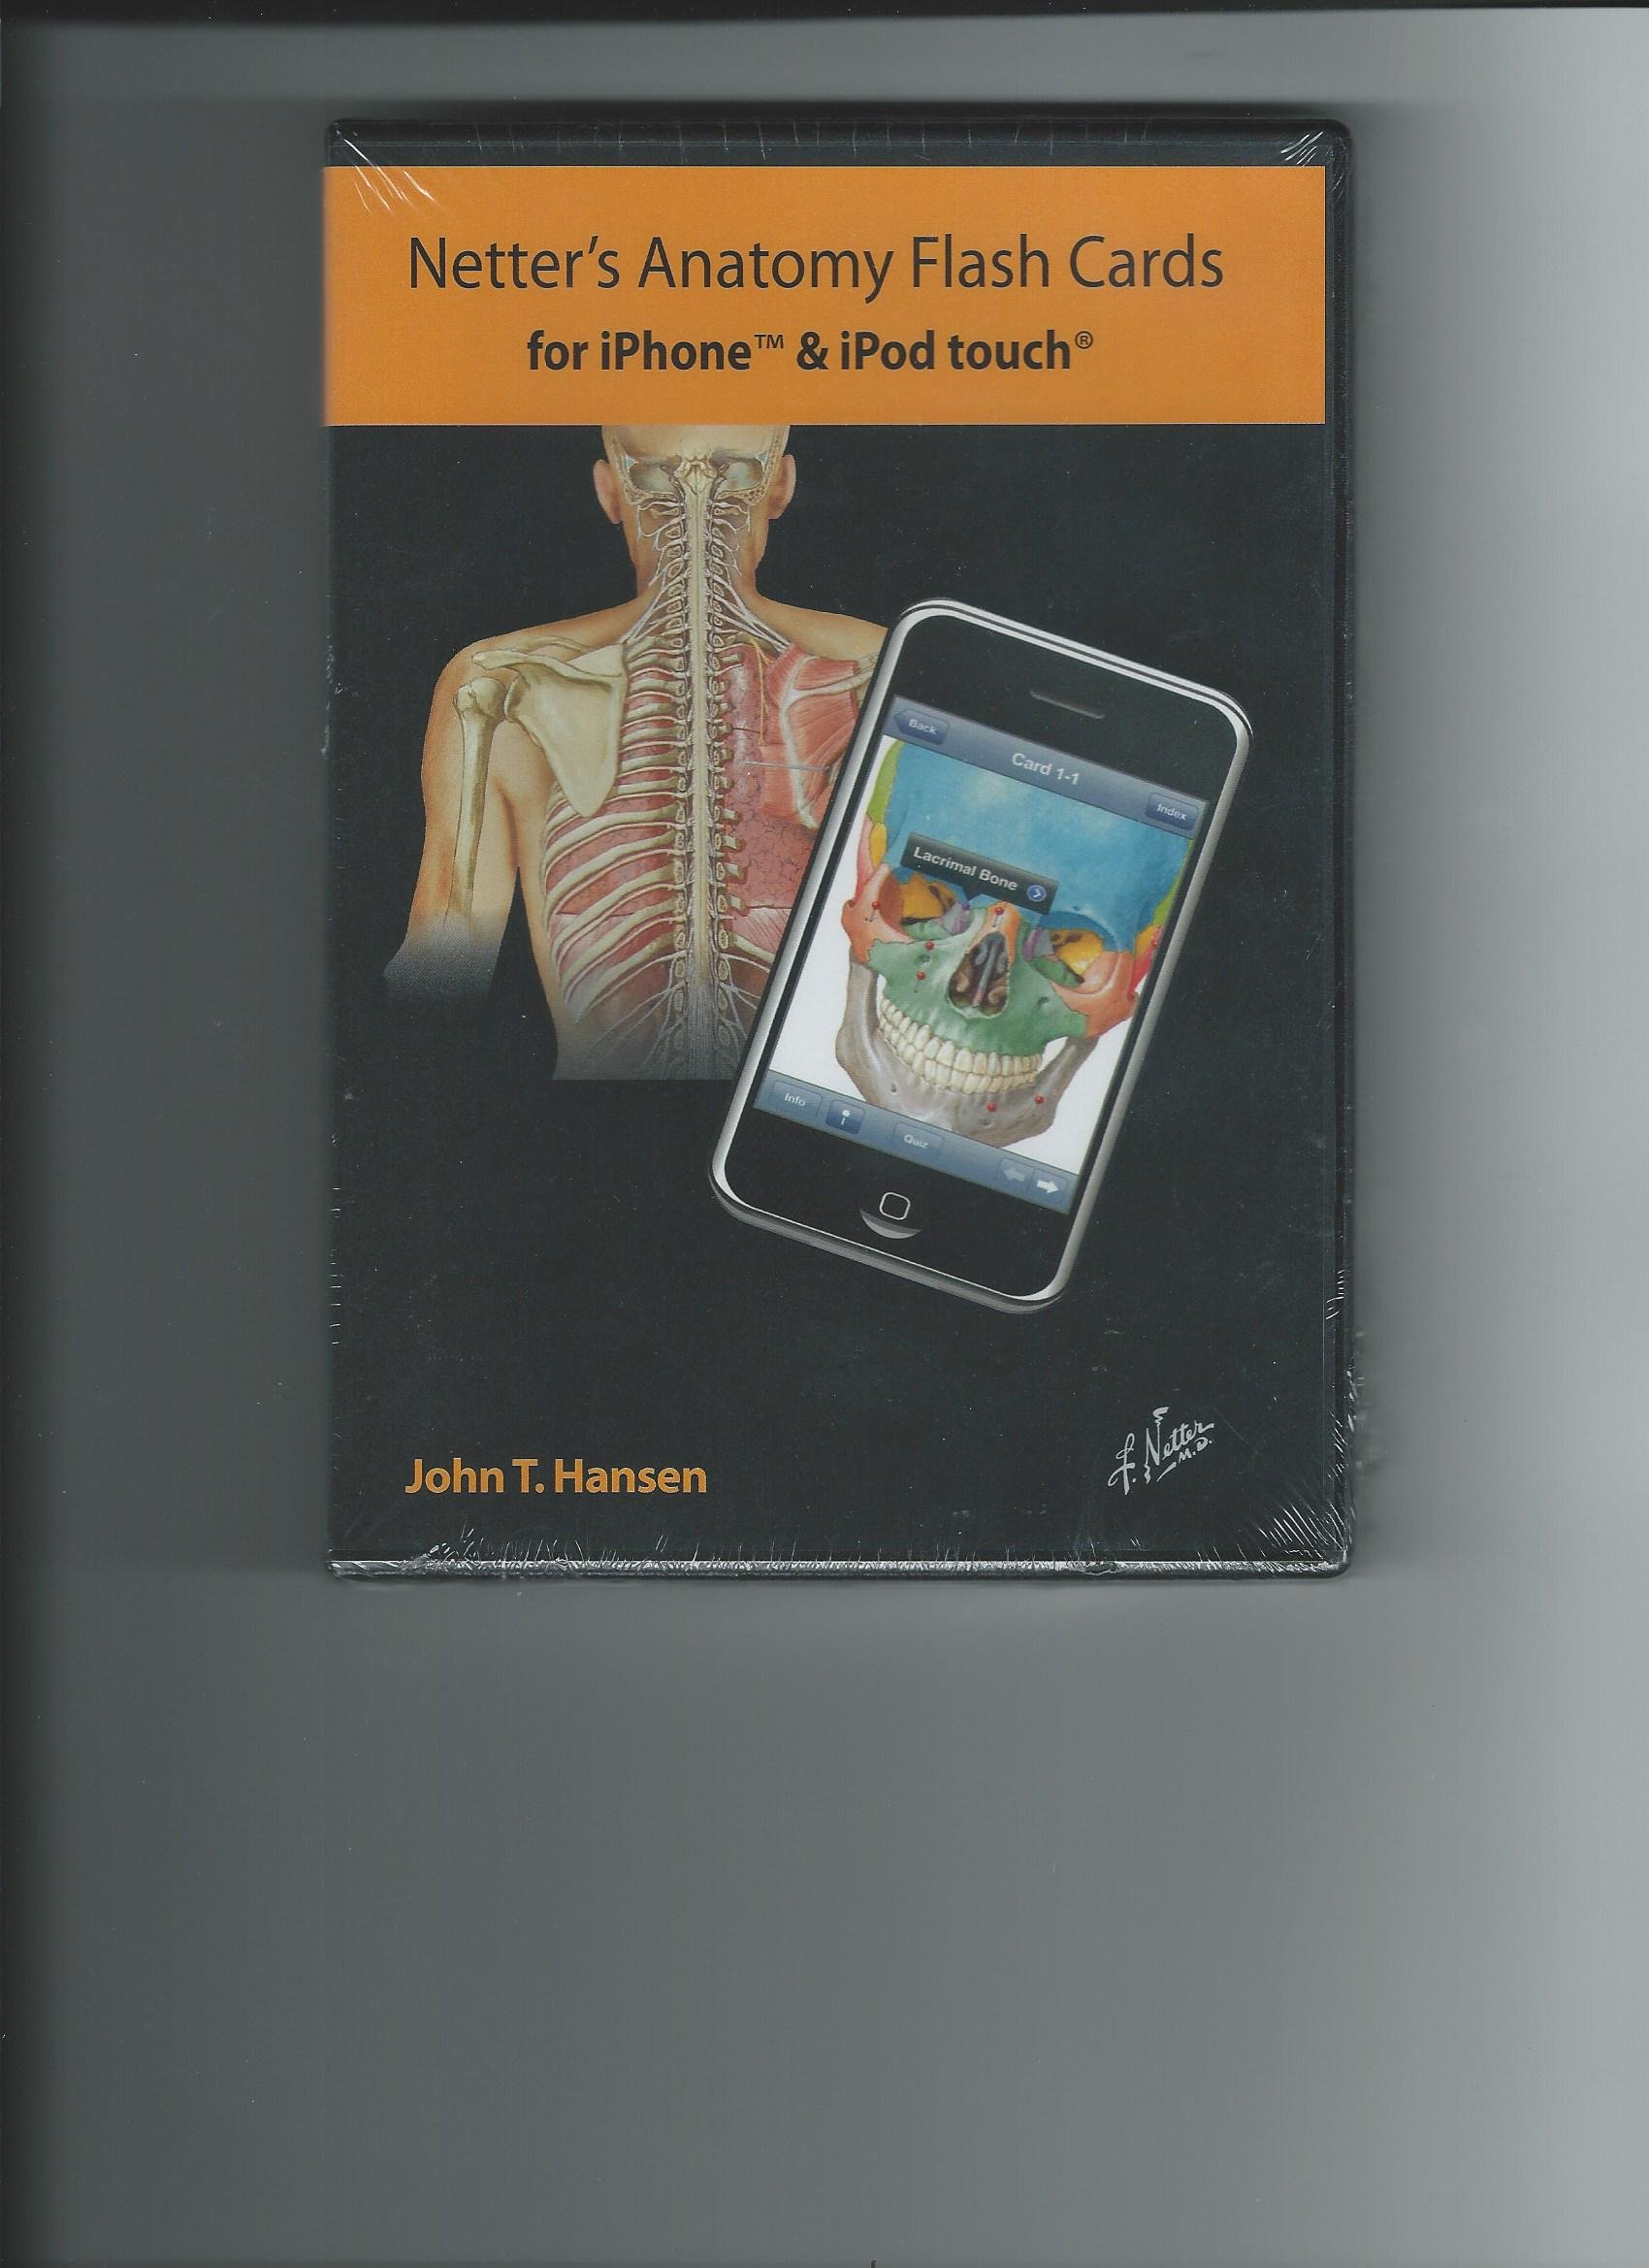 Netters Anatomy Flash Cards For Iphone Ipod Touch John T Hansen